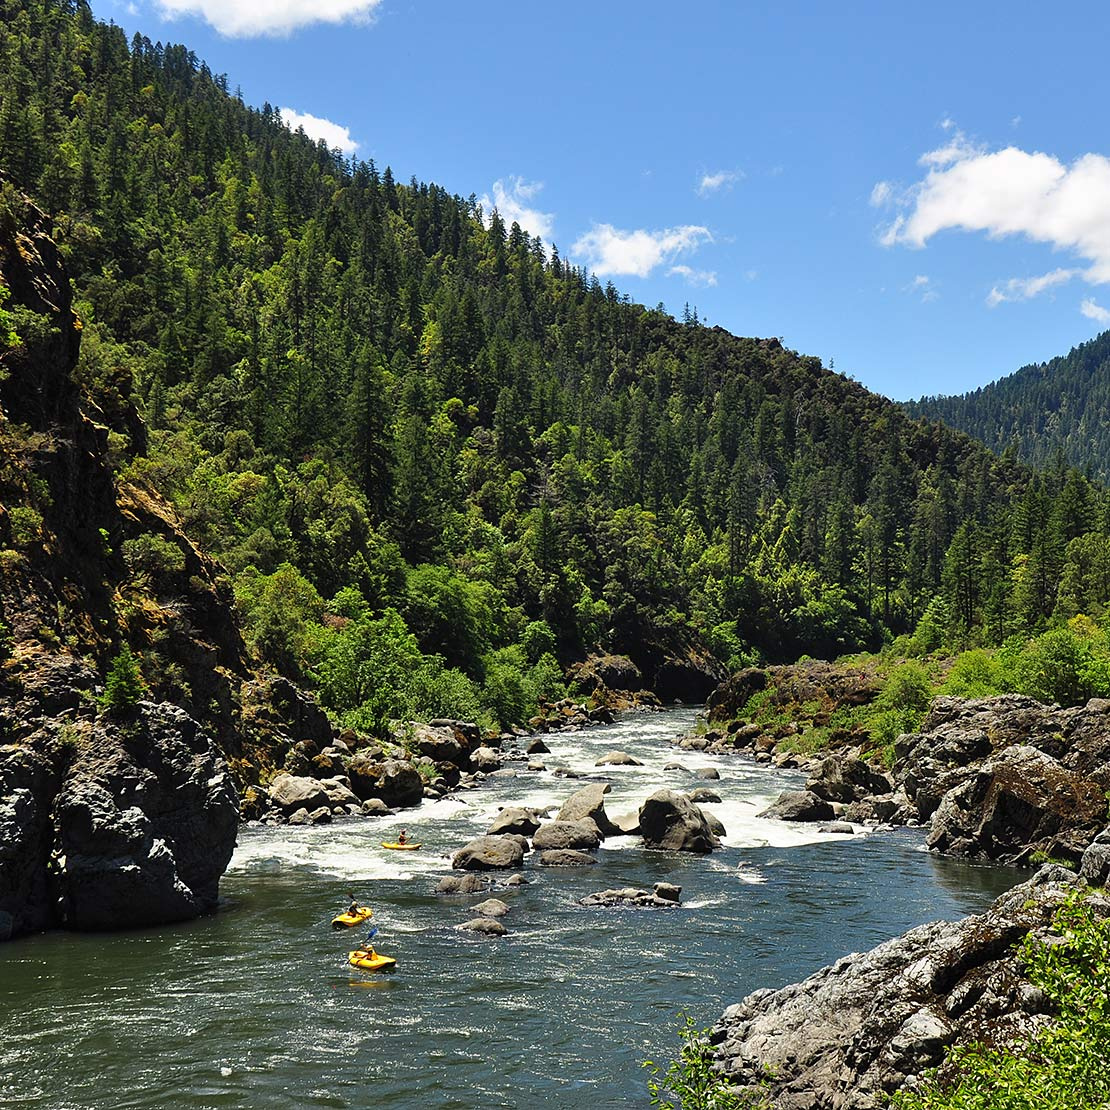 Blossom Bar on the Rogue River